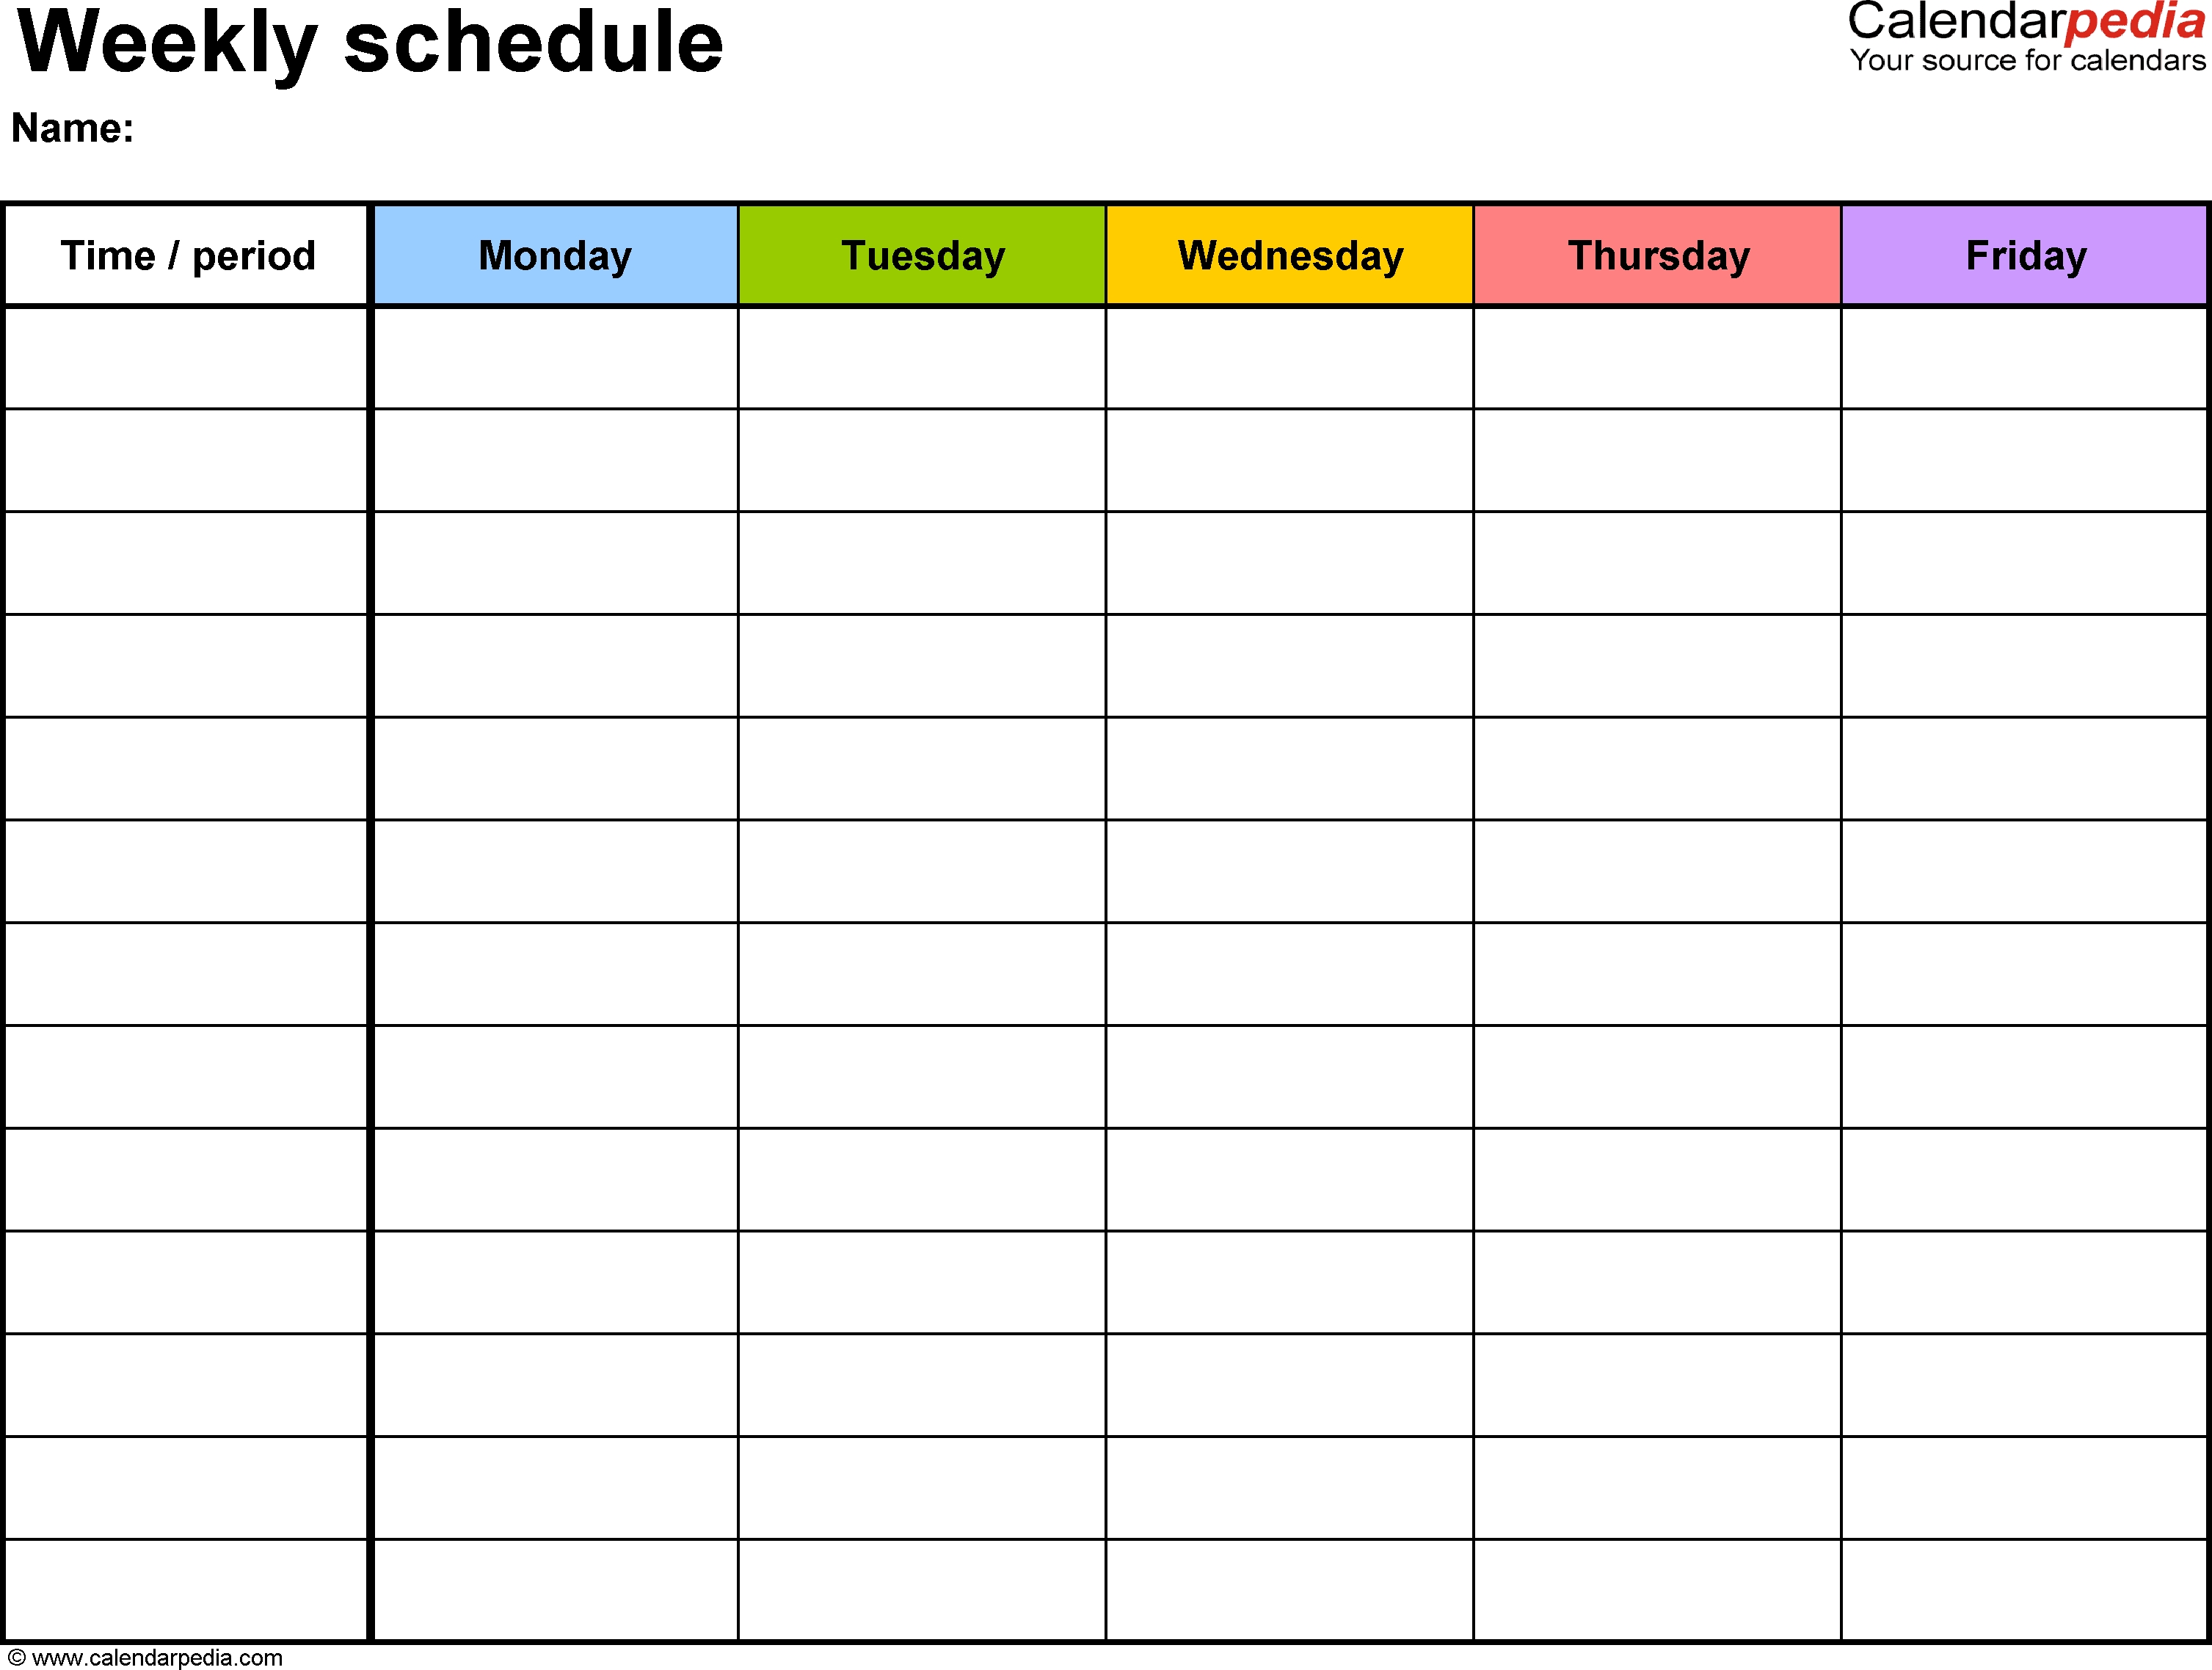 Free Weekly Schedule Templates For Word - 18 Templates in Blank 7 Day Calendar To Print